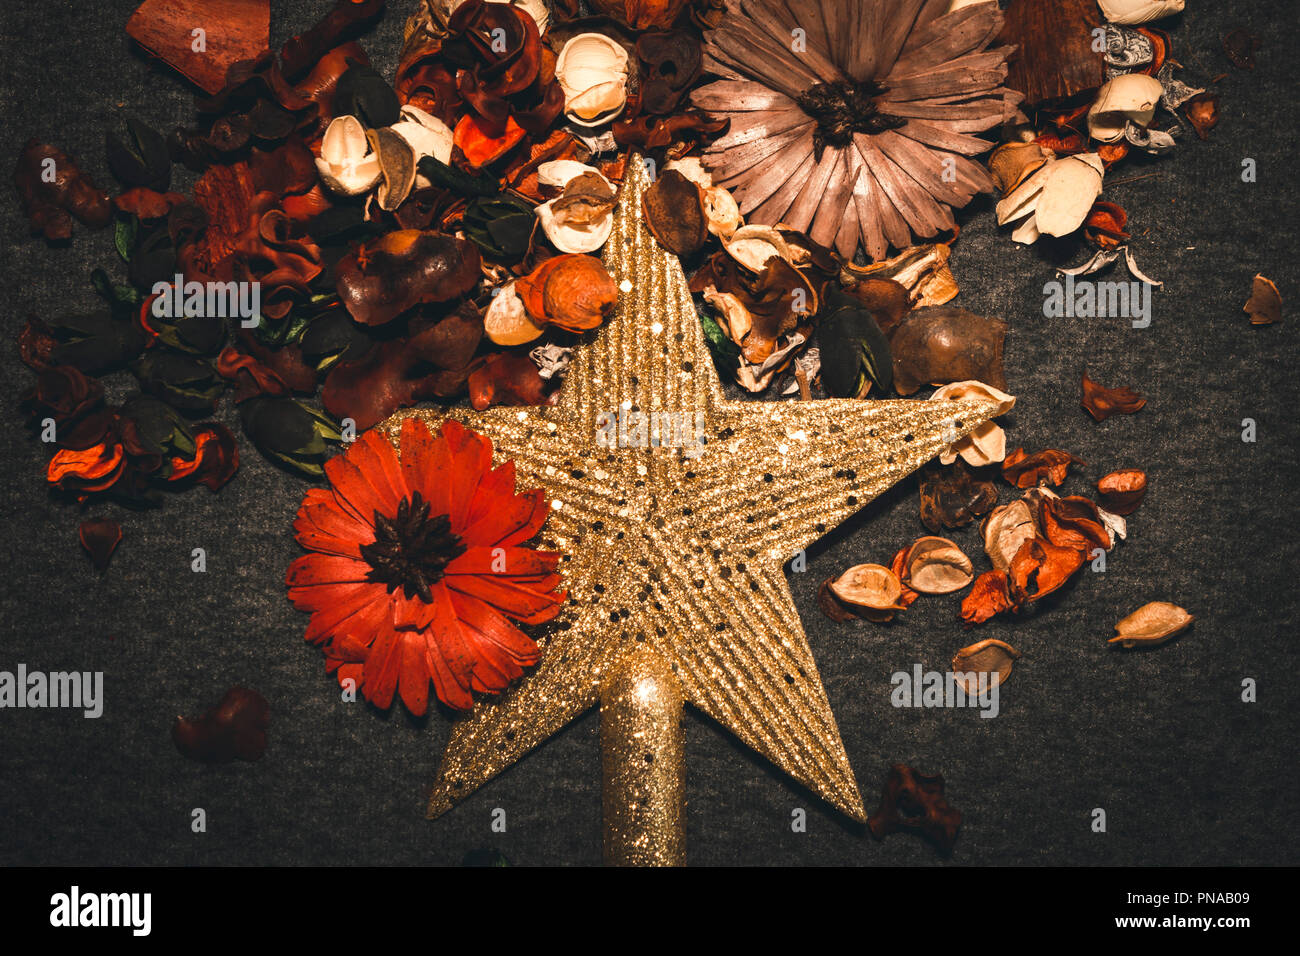 Christmas decorations on grey background, golden star with glitter, surrounded by potpourri, toned image, warm colors, studio shot, backgrounds. - Stock Image